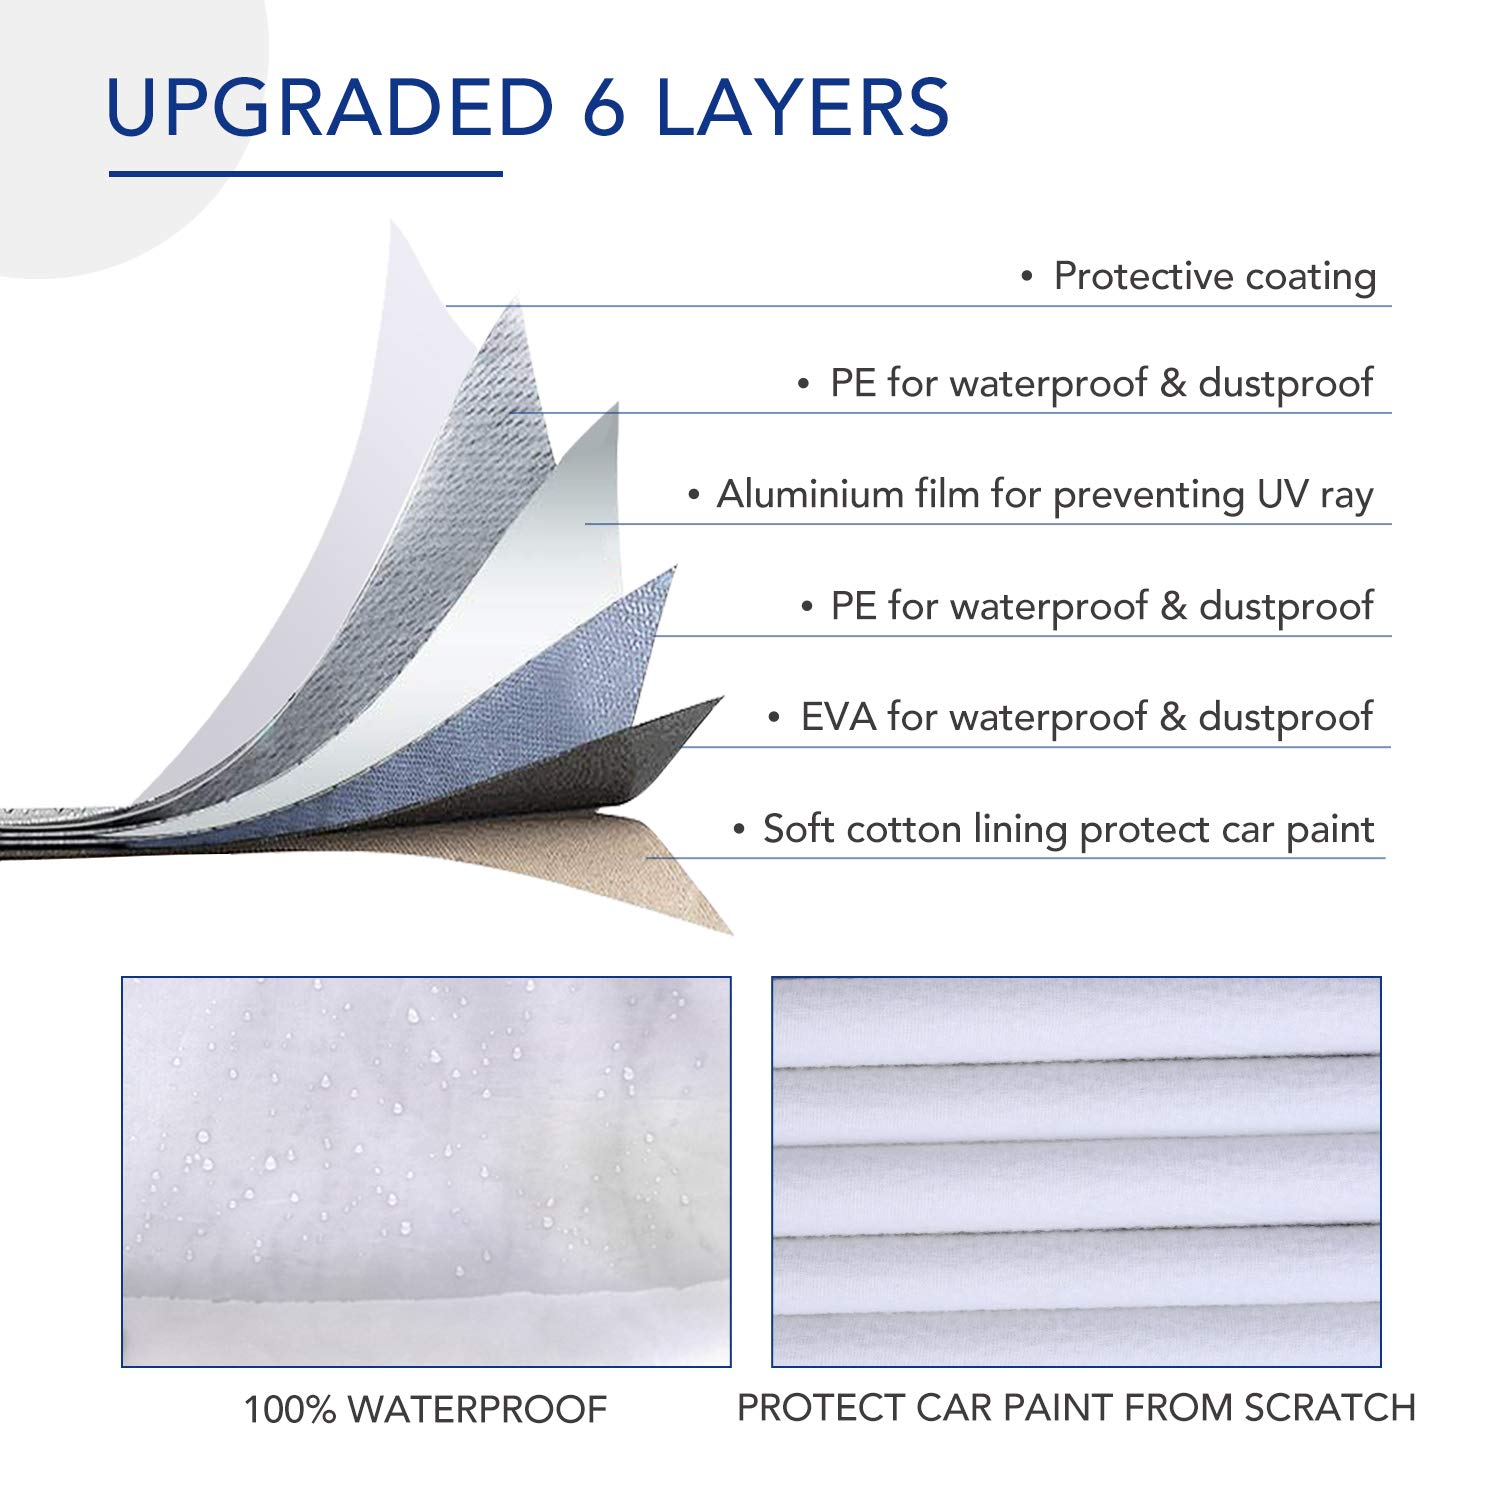 TWING Car Cover Universal Full Car Covers with Zipper Door 6 Layers All Weather Protection Waterproof Windproof Snowproof Dustproof Scratch Resistant UV Protection Car Reflective Strips Sedan Wagon